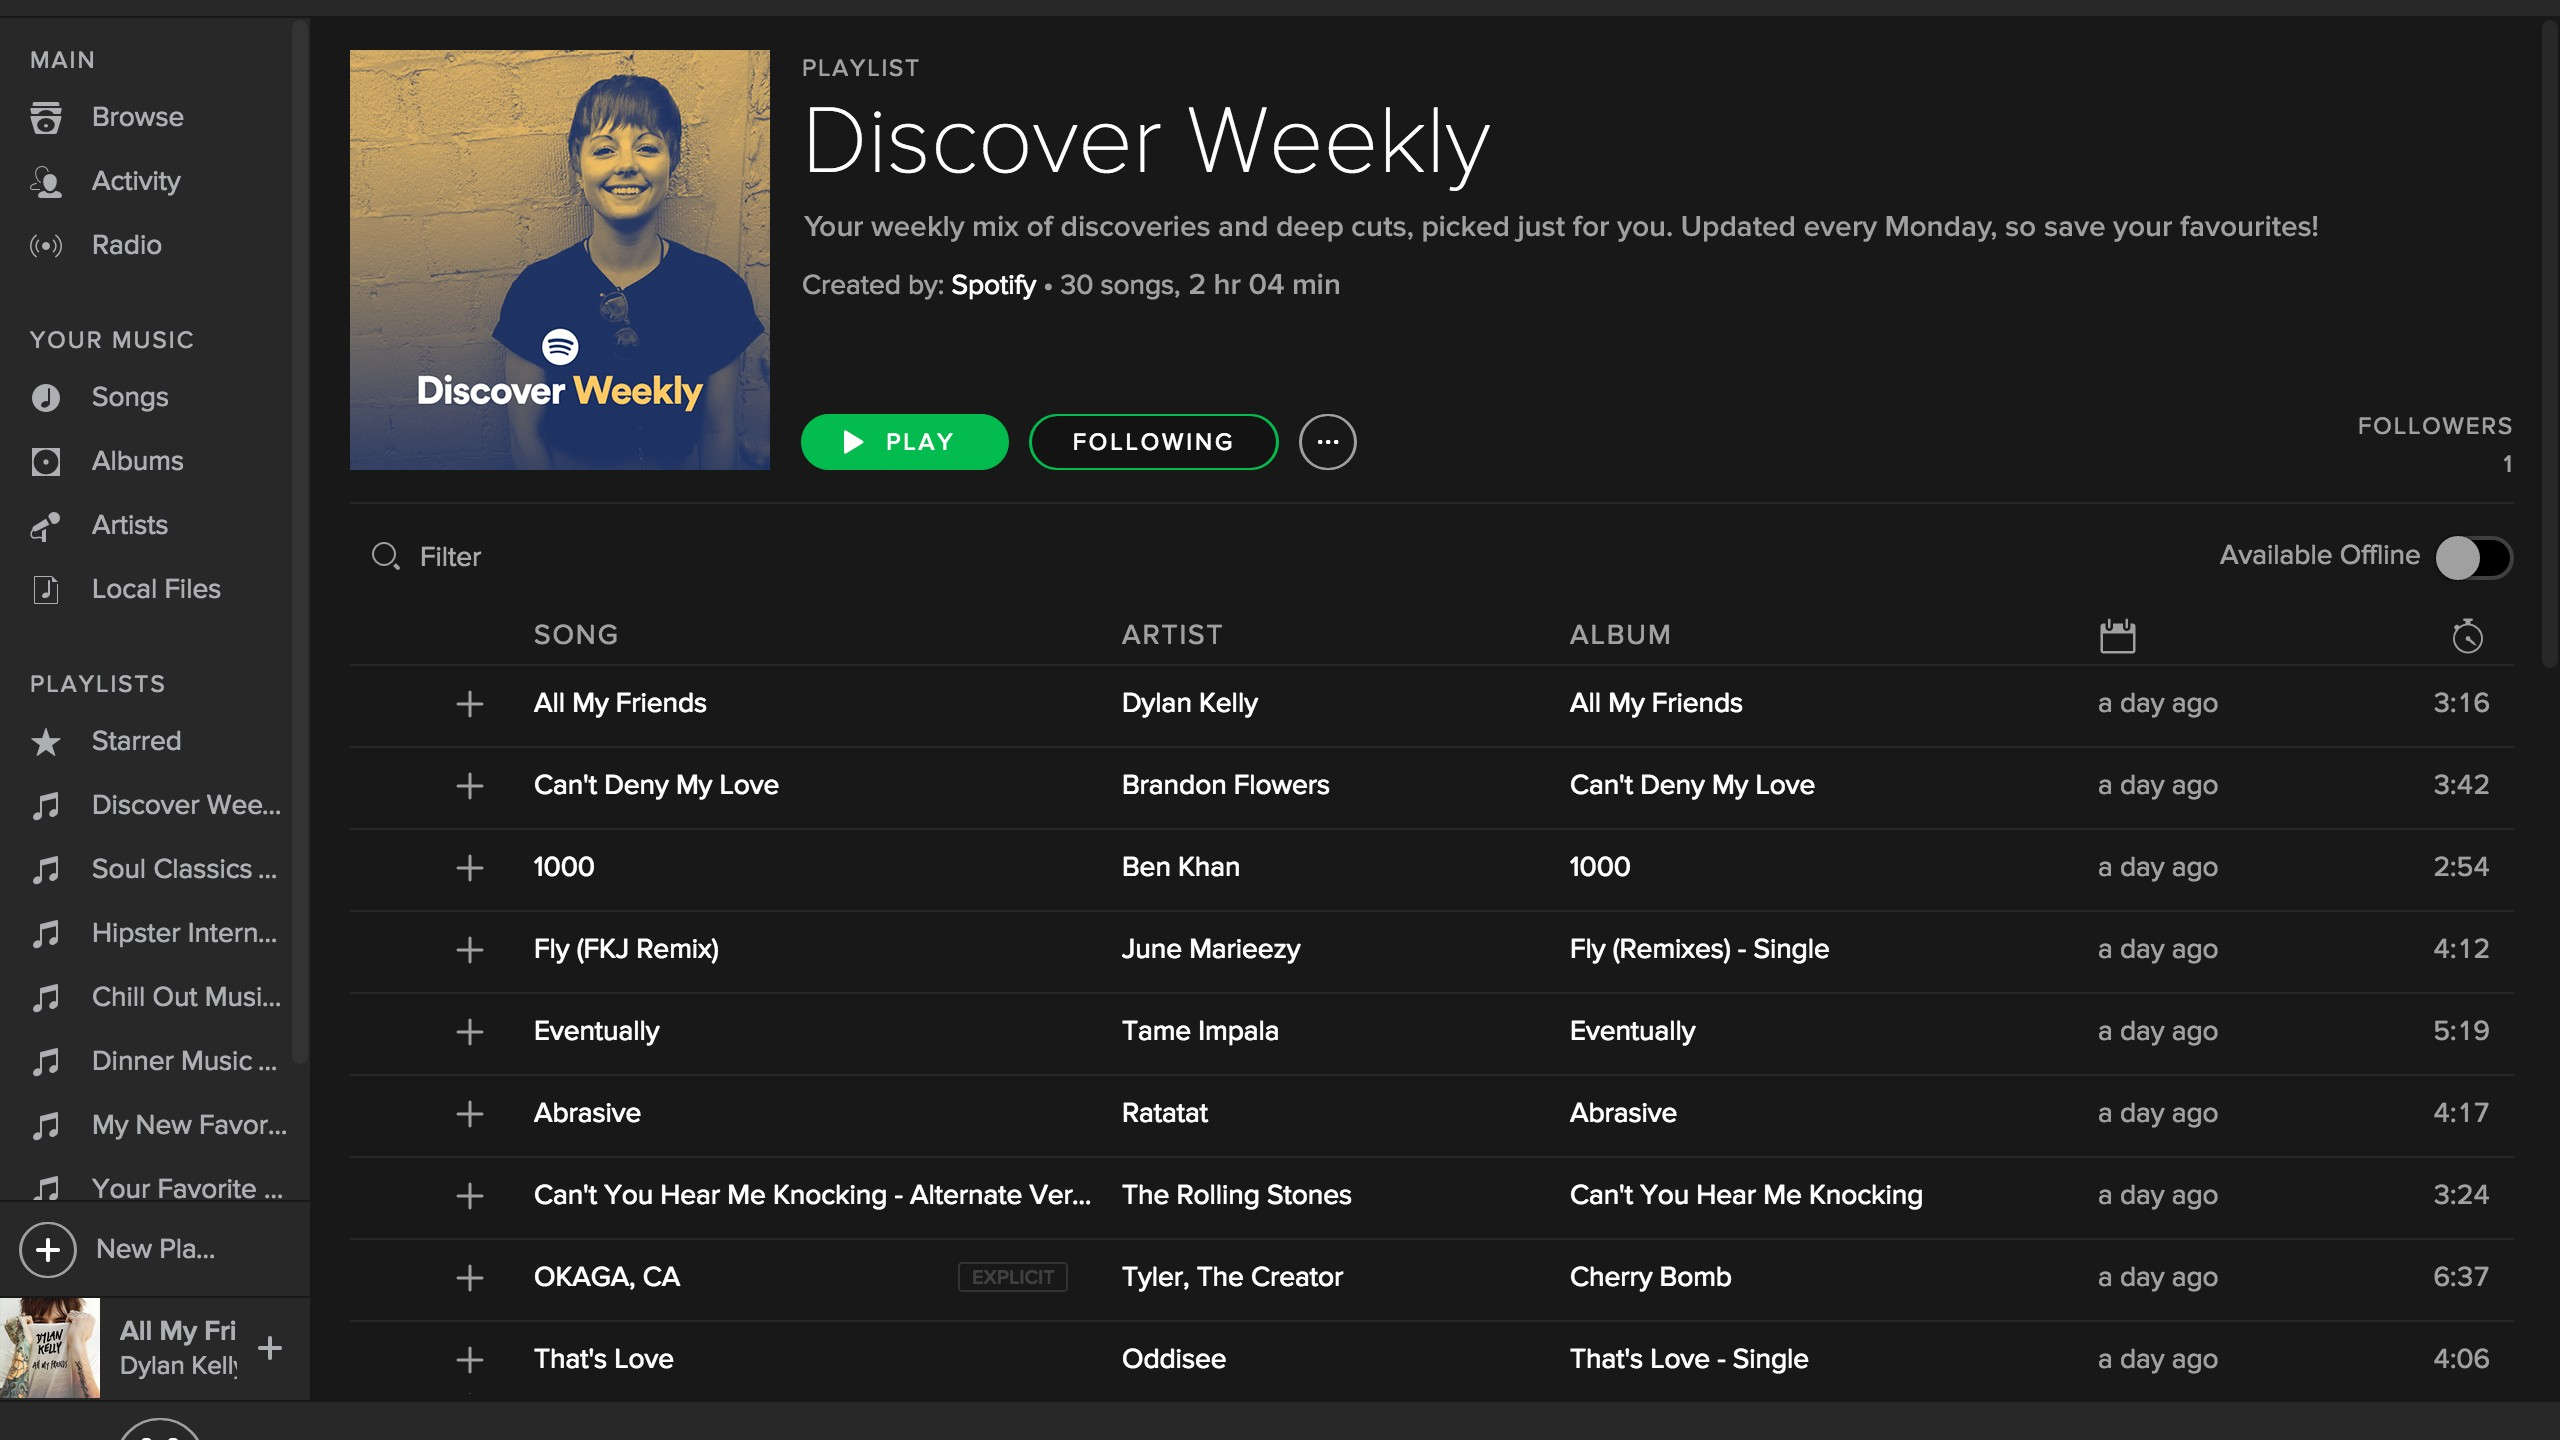 Spotify's Newest Feature Is a Weekly Playlist Just for You